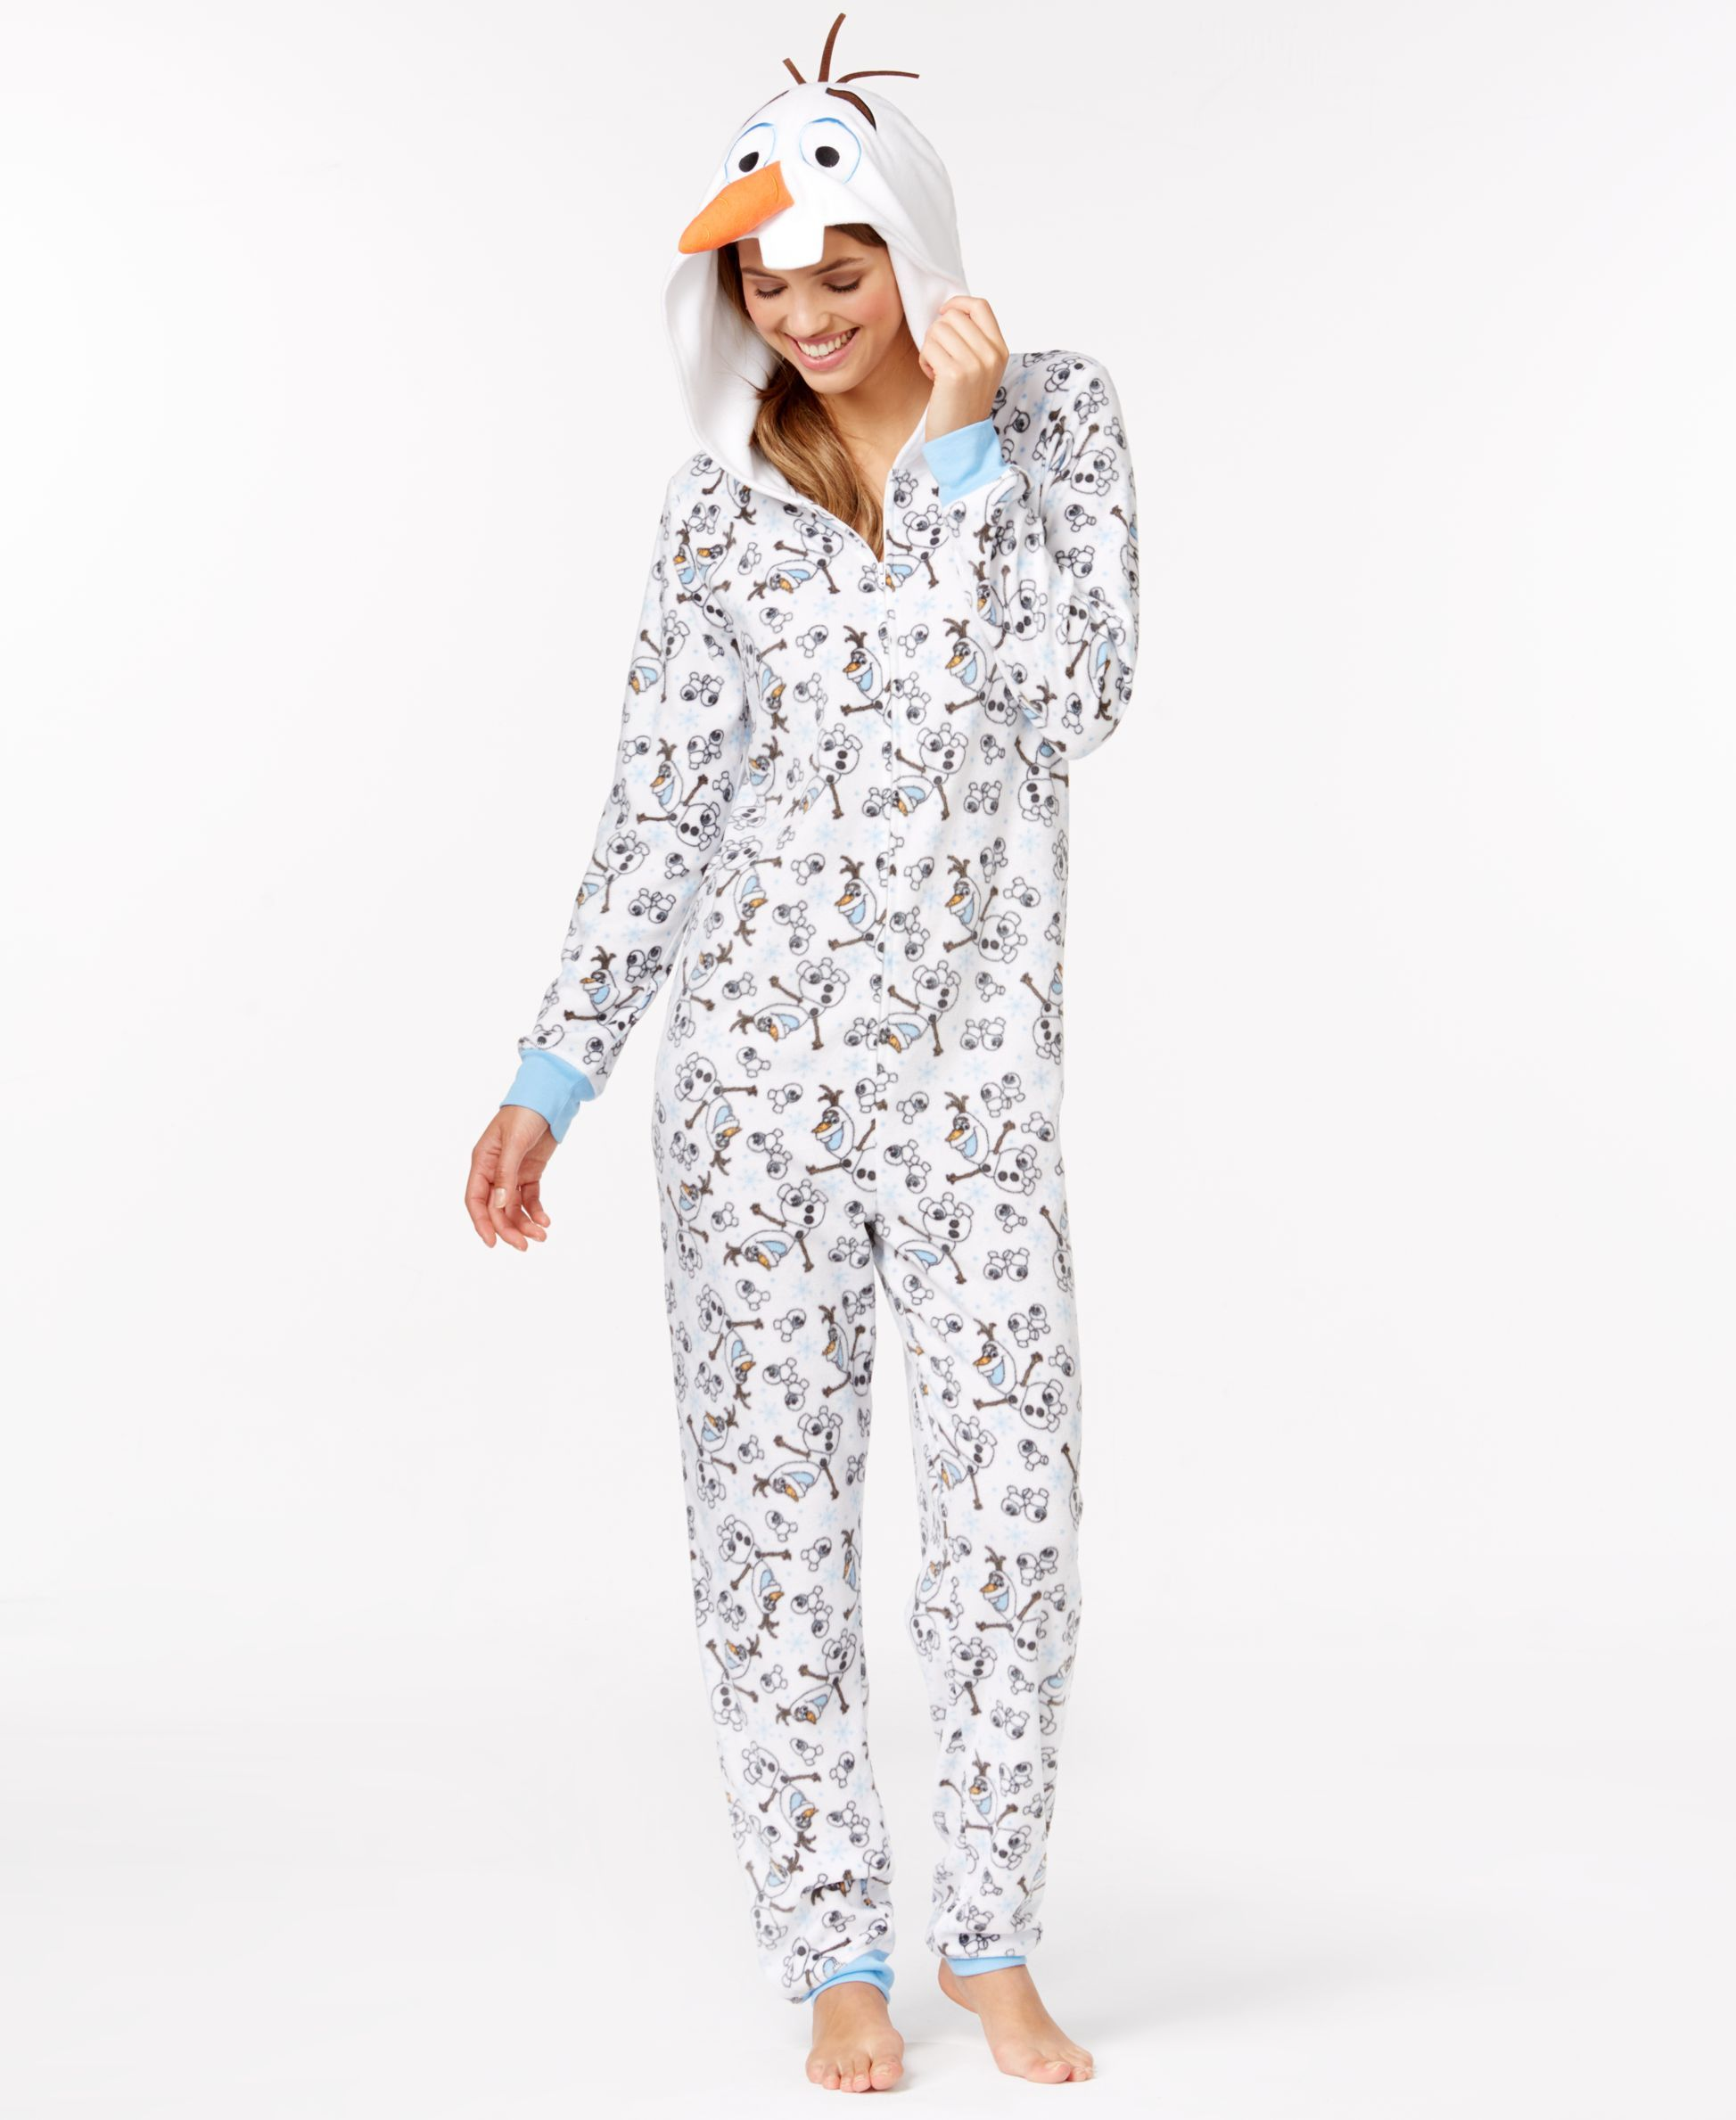 097f89c09 Olaf Adult Hooded Onesie